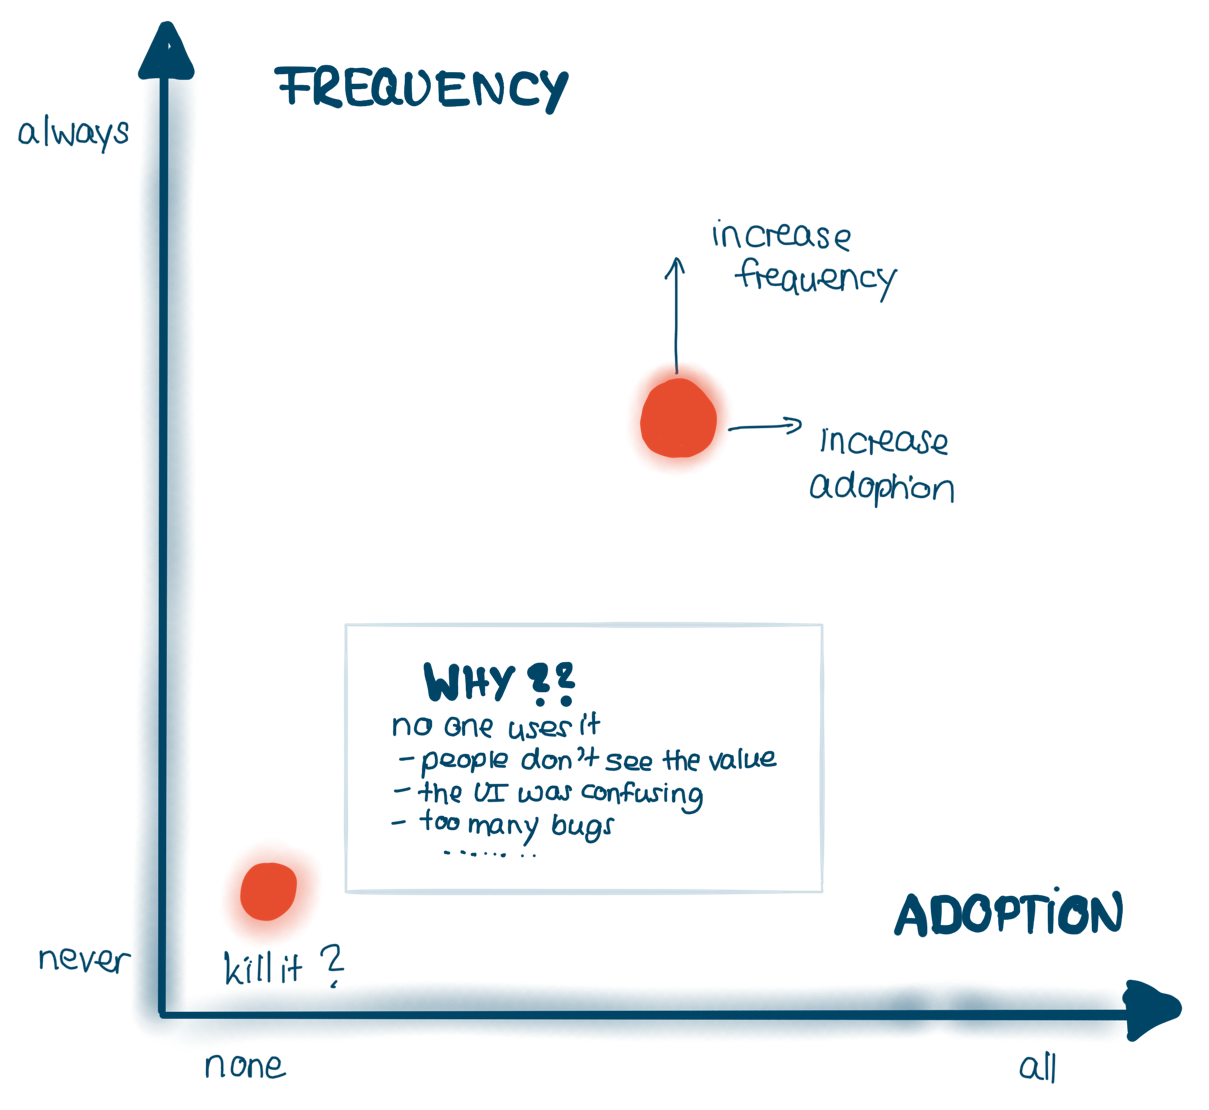 Lean UX is data-driven - adoption & frequency determine strategy